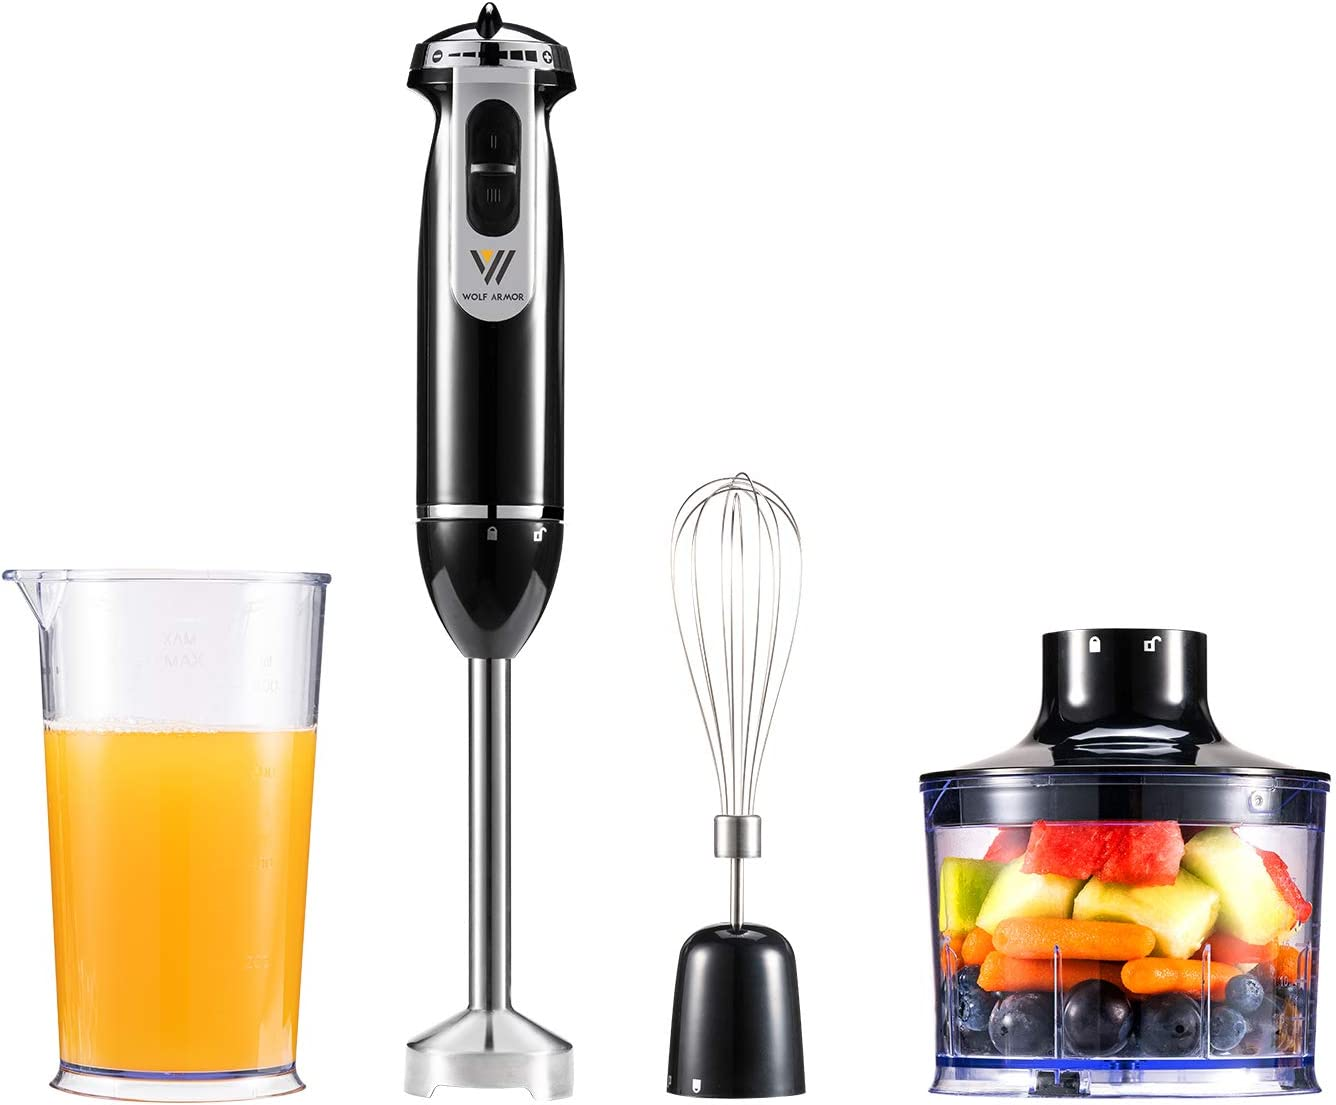 WOLF ARMOR 350 Watt 8-Speed Immersion Hand Blender, Emersion Blender, 3-In-1 Set Includes Detachable 304 Stainless Steel Stick Blender, Whisk, Chopper. For Puree Baby Food, Soup and Juices, BPA Free